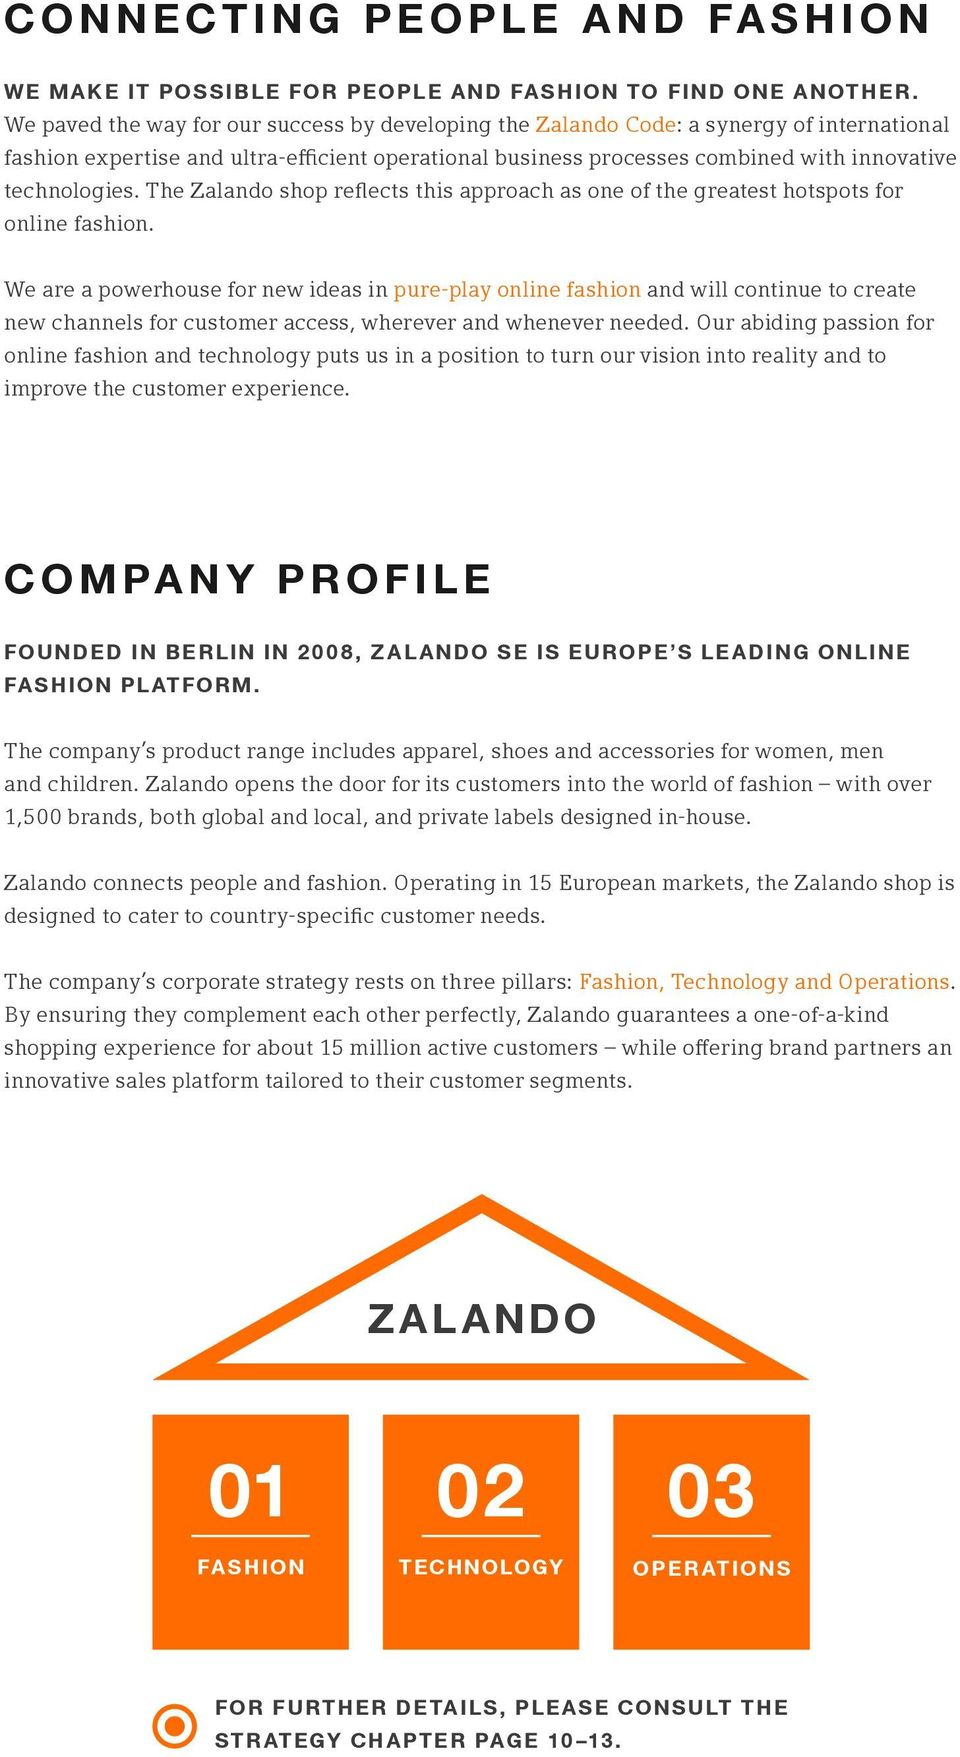 The Zalando shop reflects this approach as one of the greatest hotspots for online fashion.